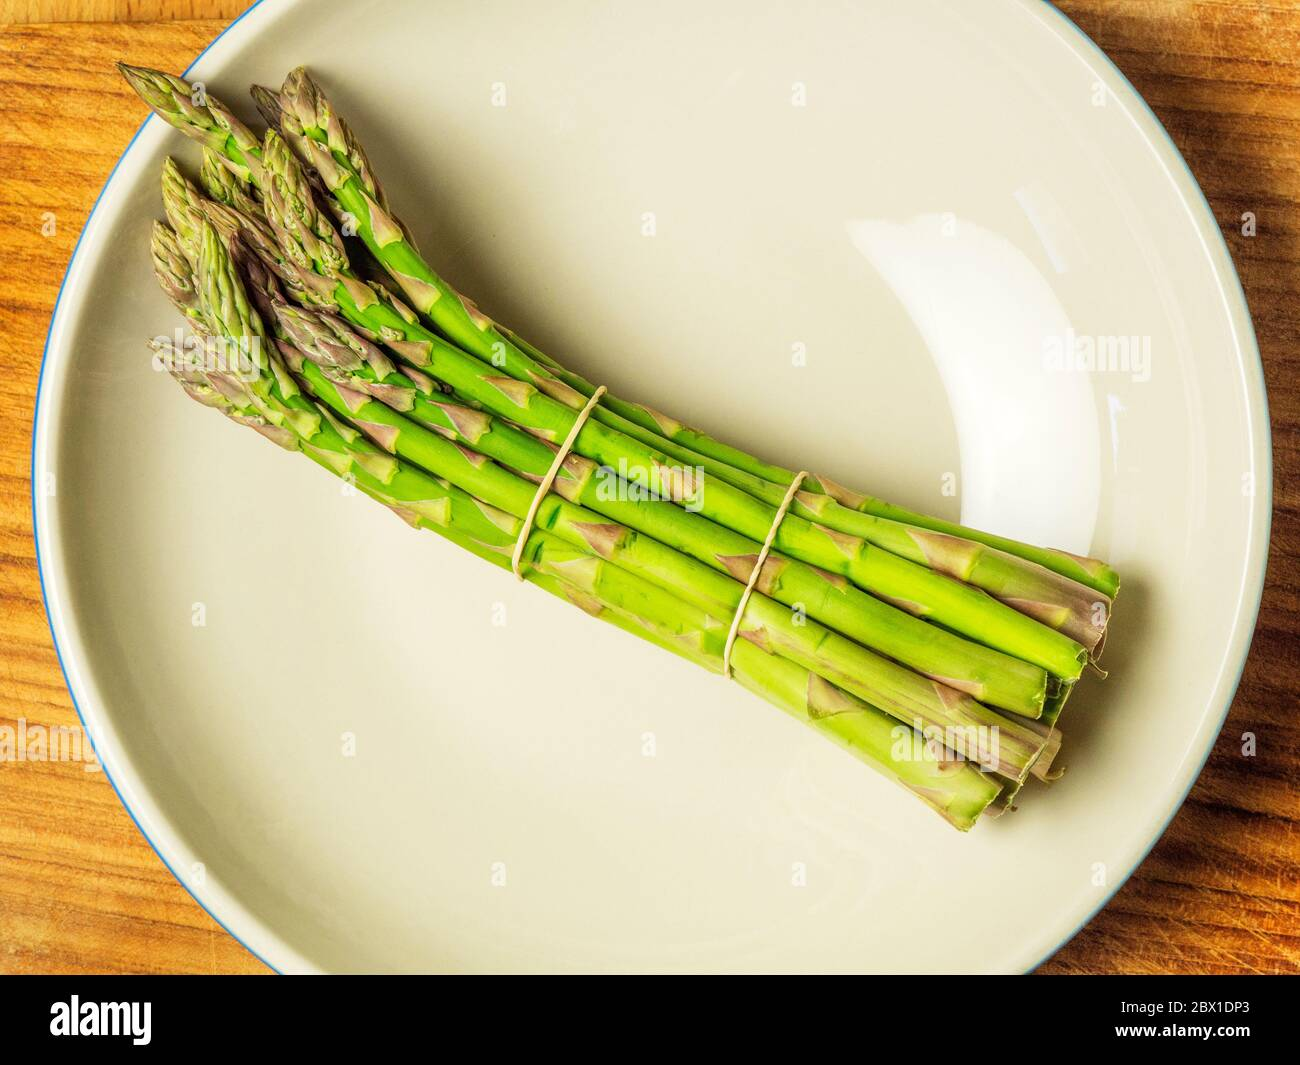 A bunch of asparagus spears in a bowl on a wooden chopping board Stock Photo